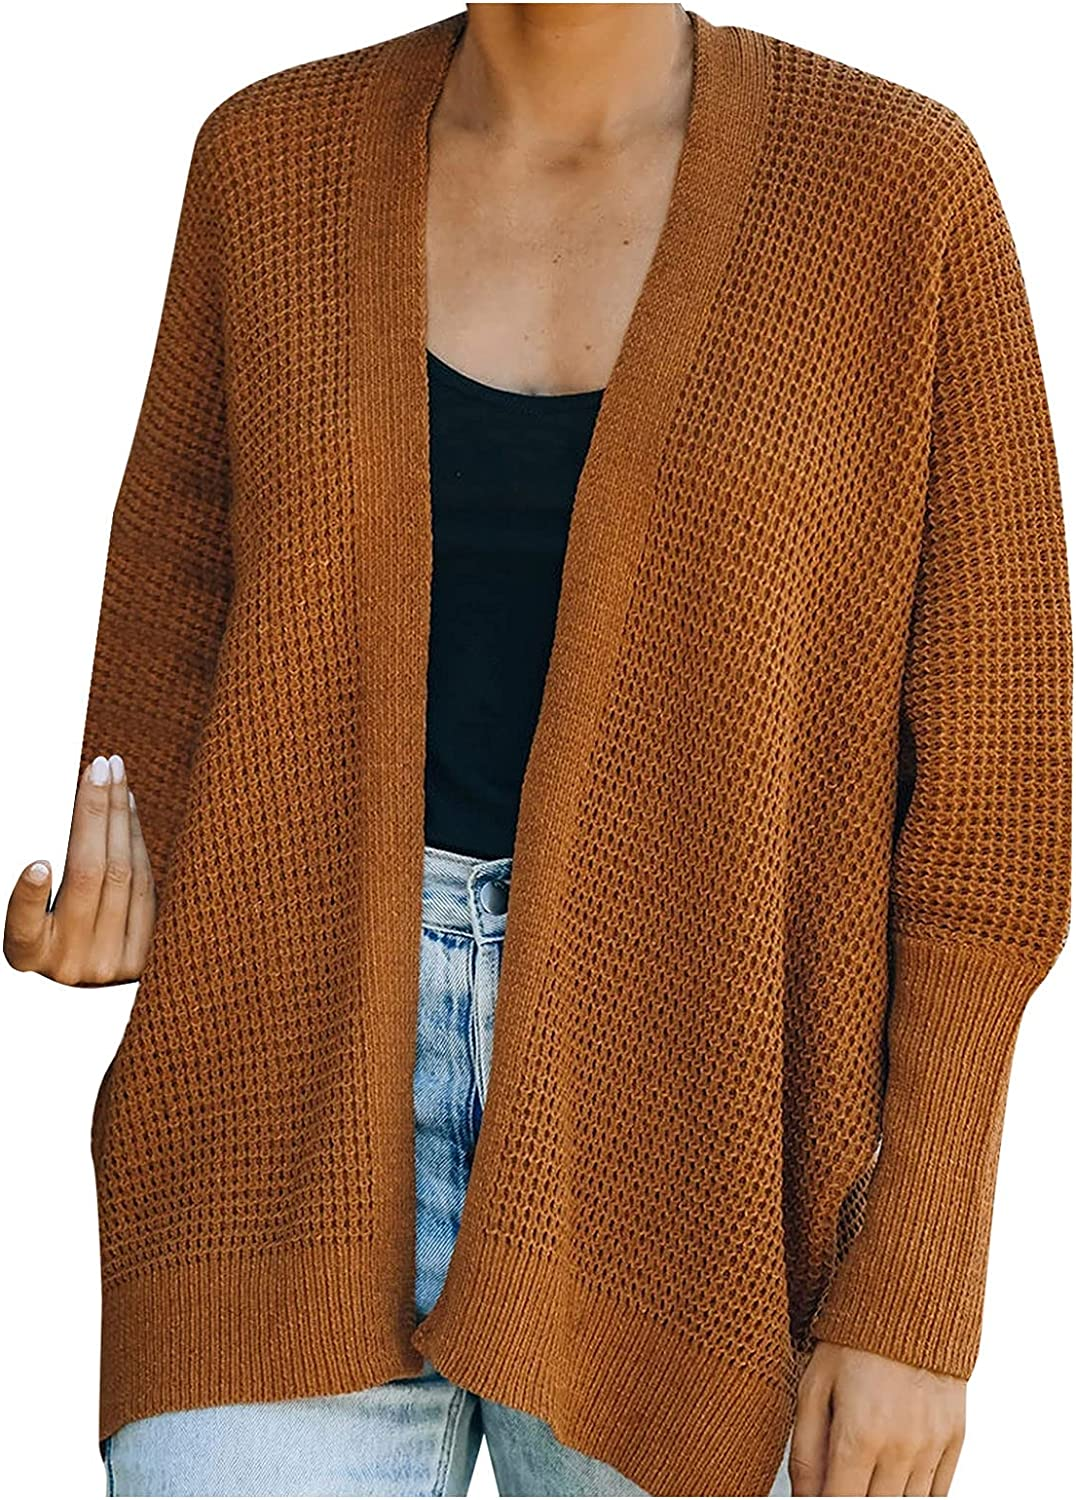 Women Waffle Cardigan Sweater Cuffed Sleeves Open Front Knitted Coat Long-Sleeved Short Outwear Coat by Pocciol